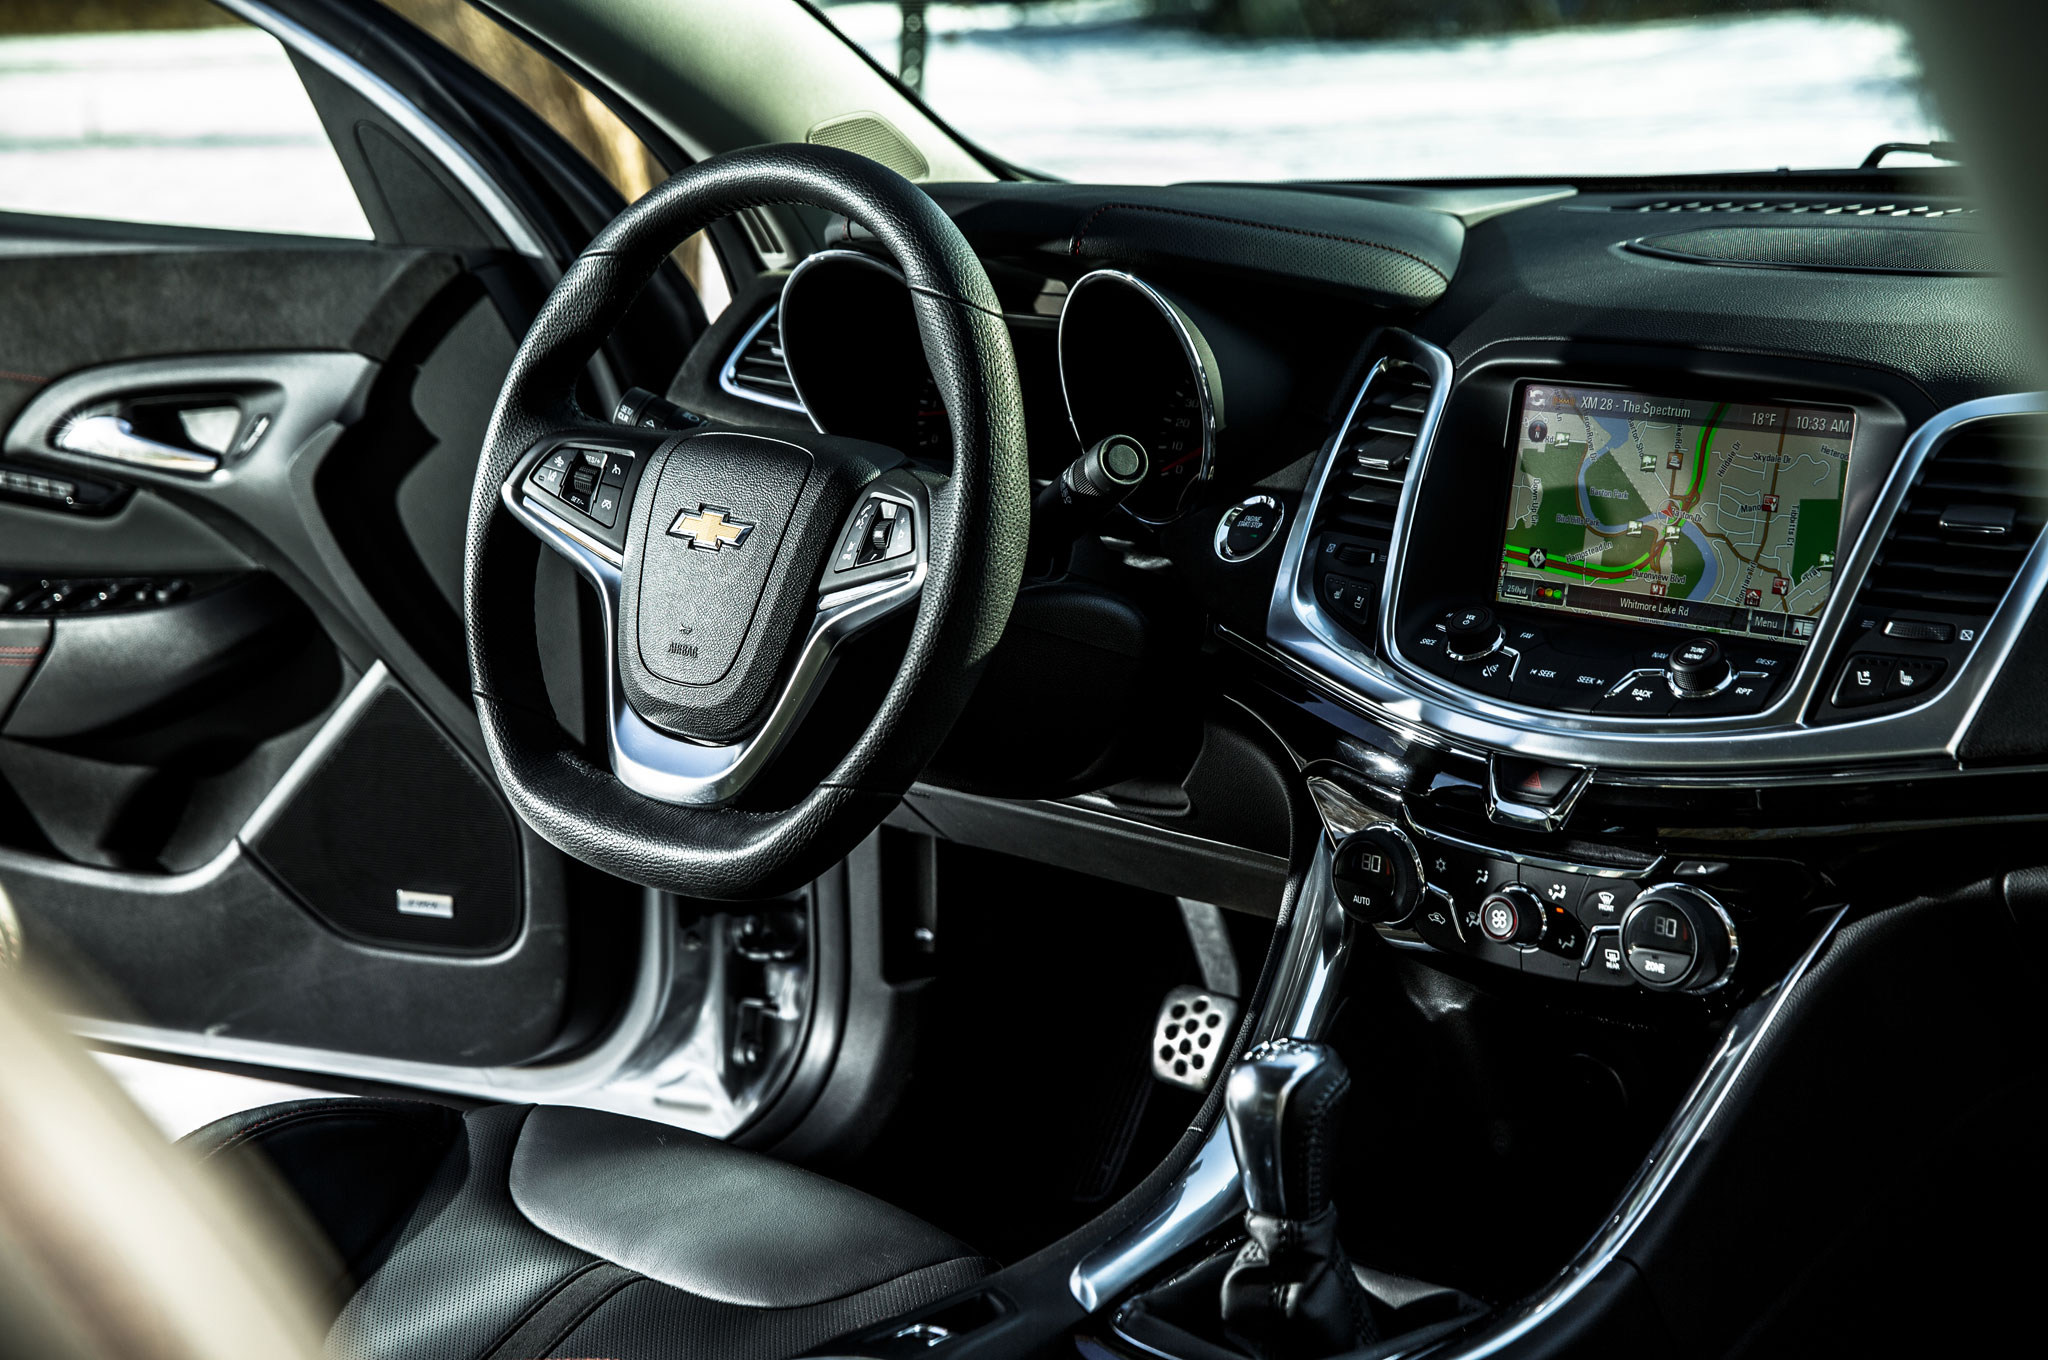 2015 Chevrolet SS Steering Wheel And Navigation Display